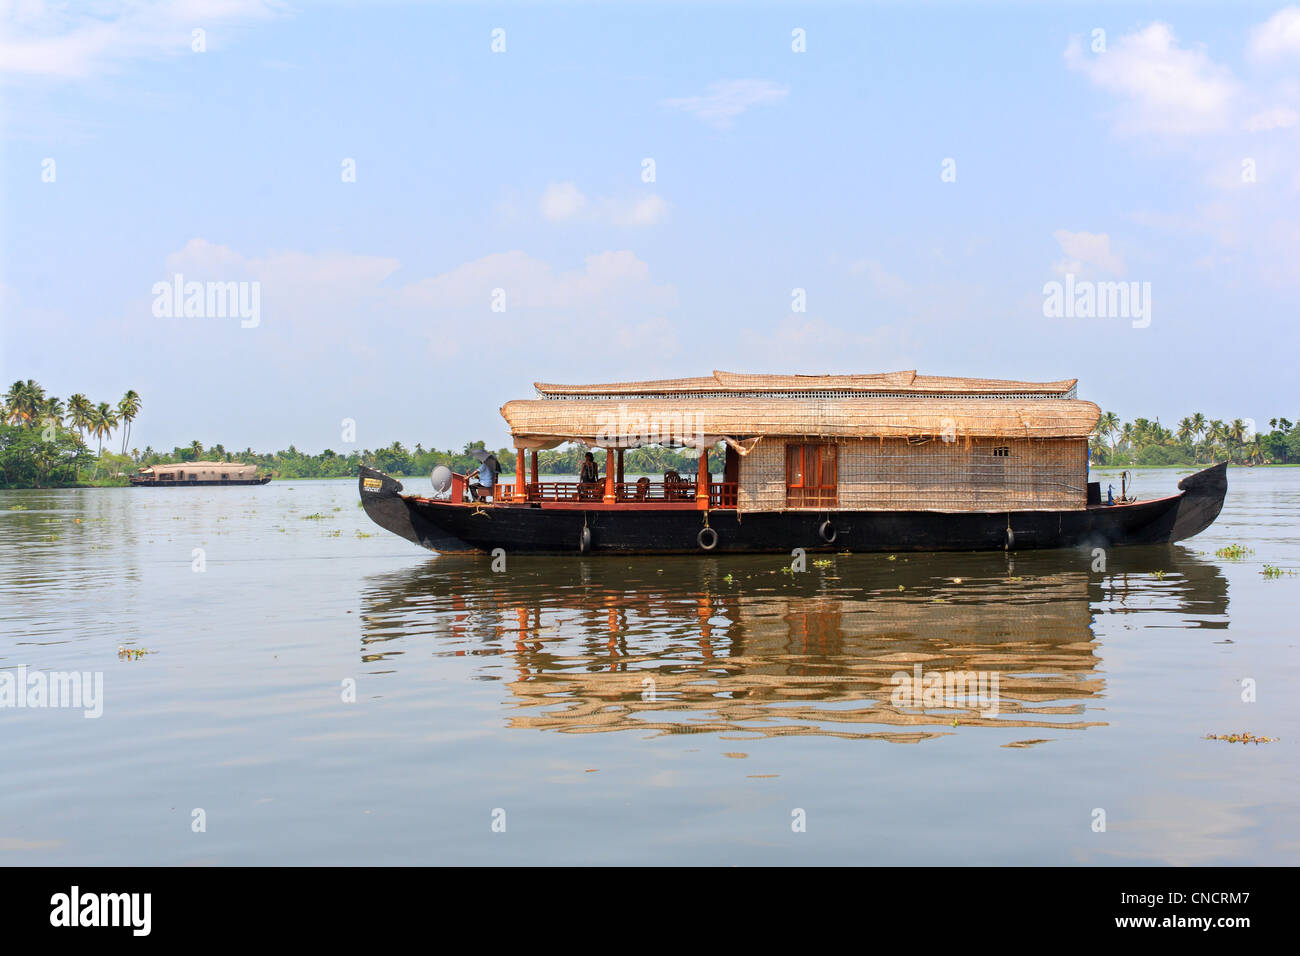 house boat, Kerala, India - Stock Image